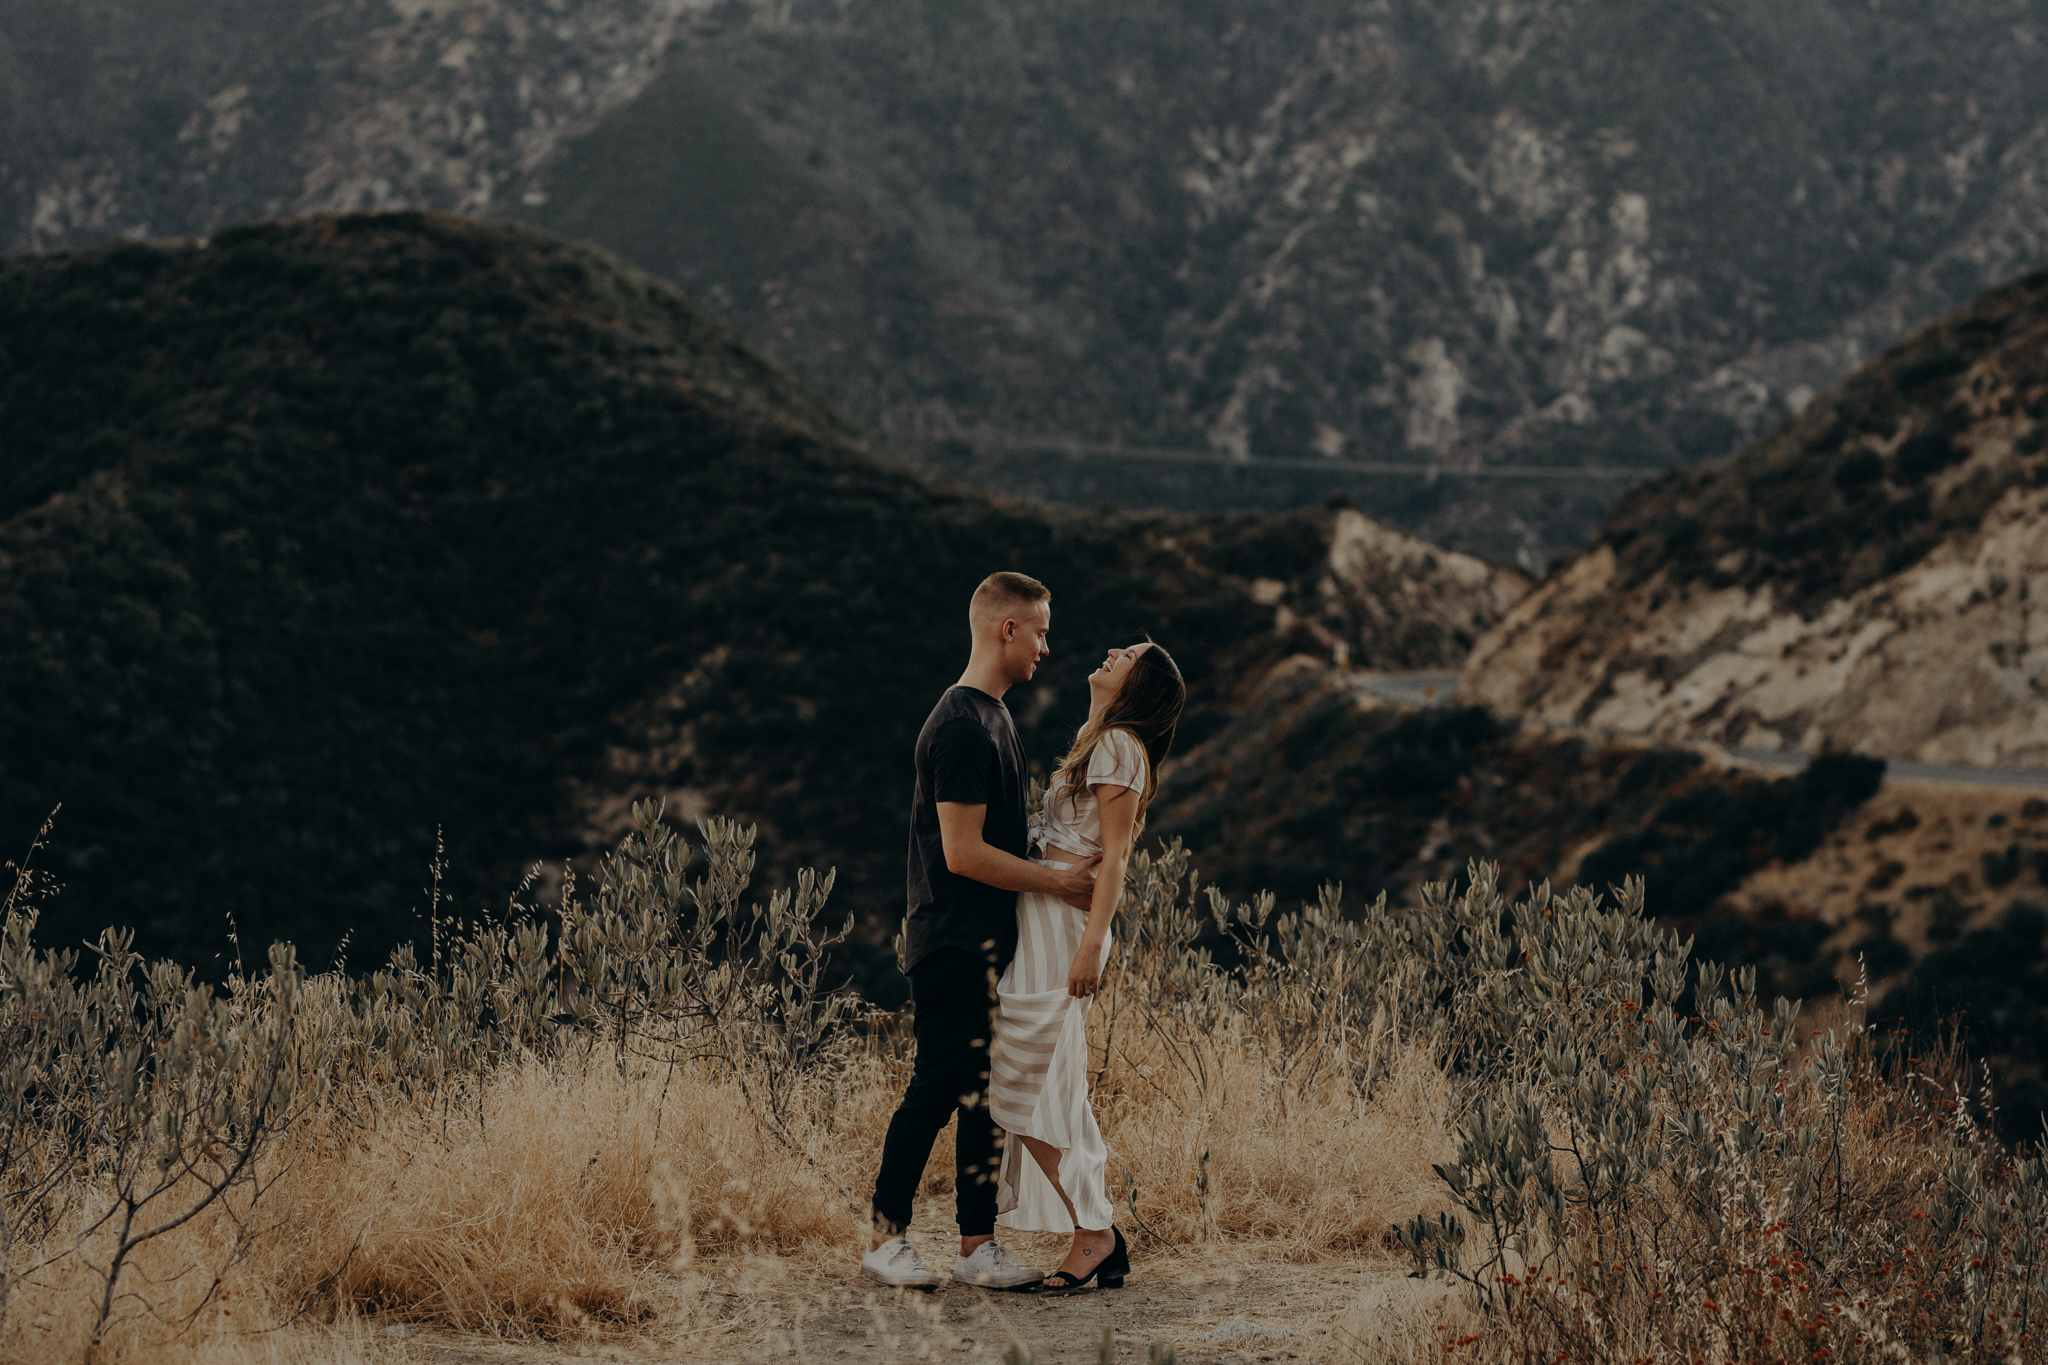 Isaiah + Taylor Photography - Los Angeles Forest Engagement Session - Laid back wedding photographer-020.jpg